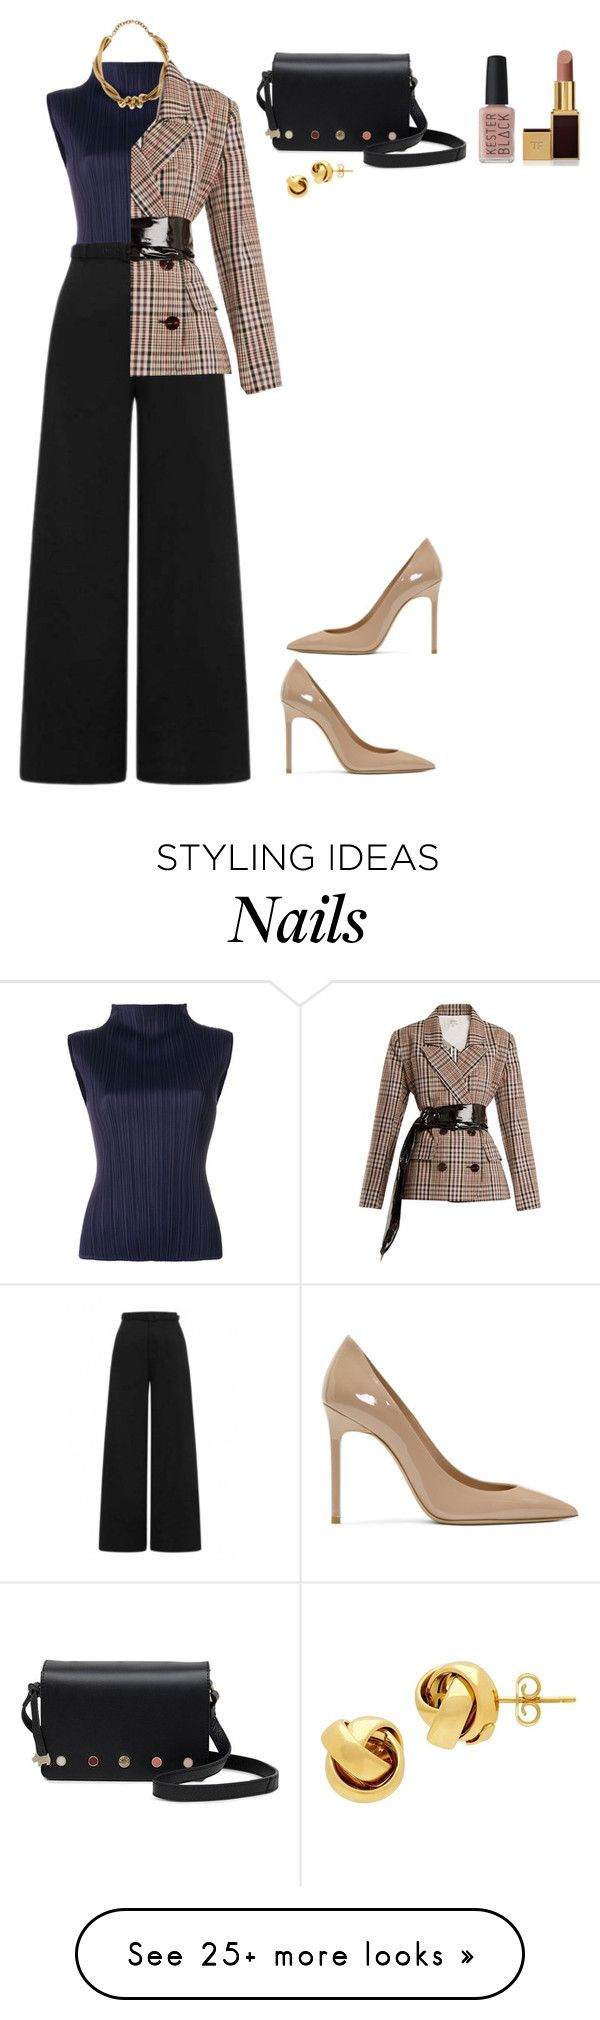 """Untitled #503"" by zahraamuhee on Polyvore featuring Pleats Please by Issey Miyake, Collectif, Yves Saint Laurent, Radley, Oscar de la Renta, Isa Arfen, Lord & Taylor, Tom Ford and Kester Black"